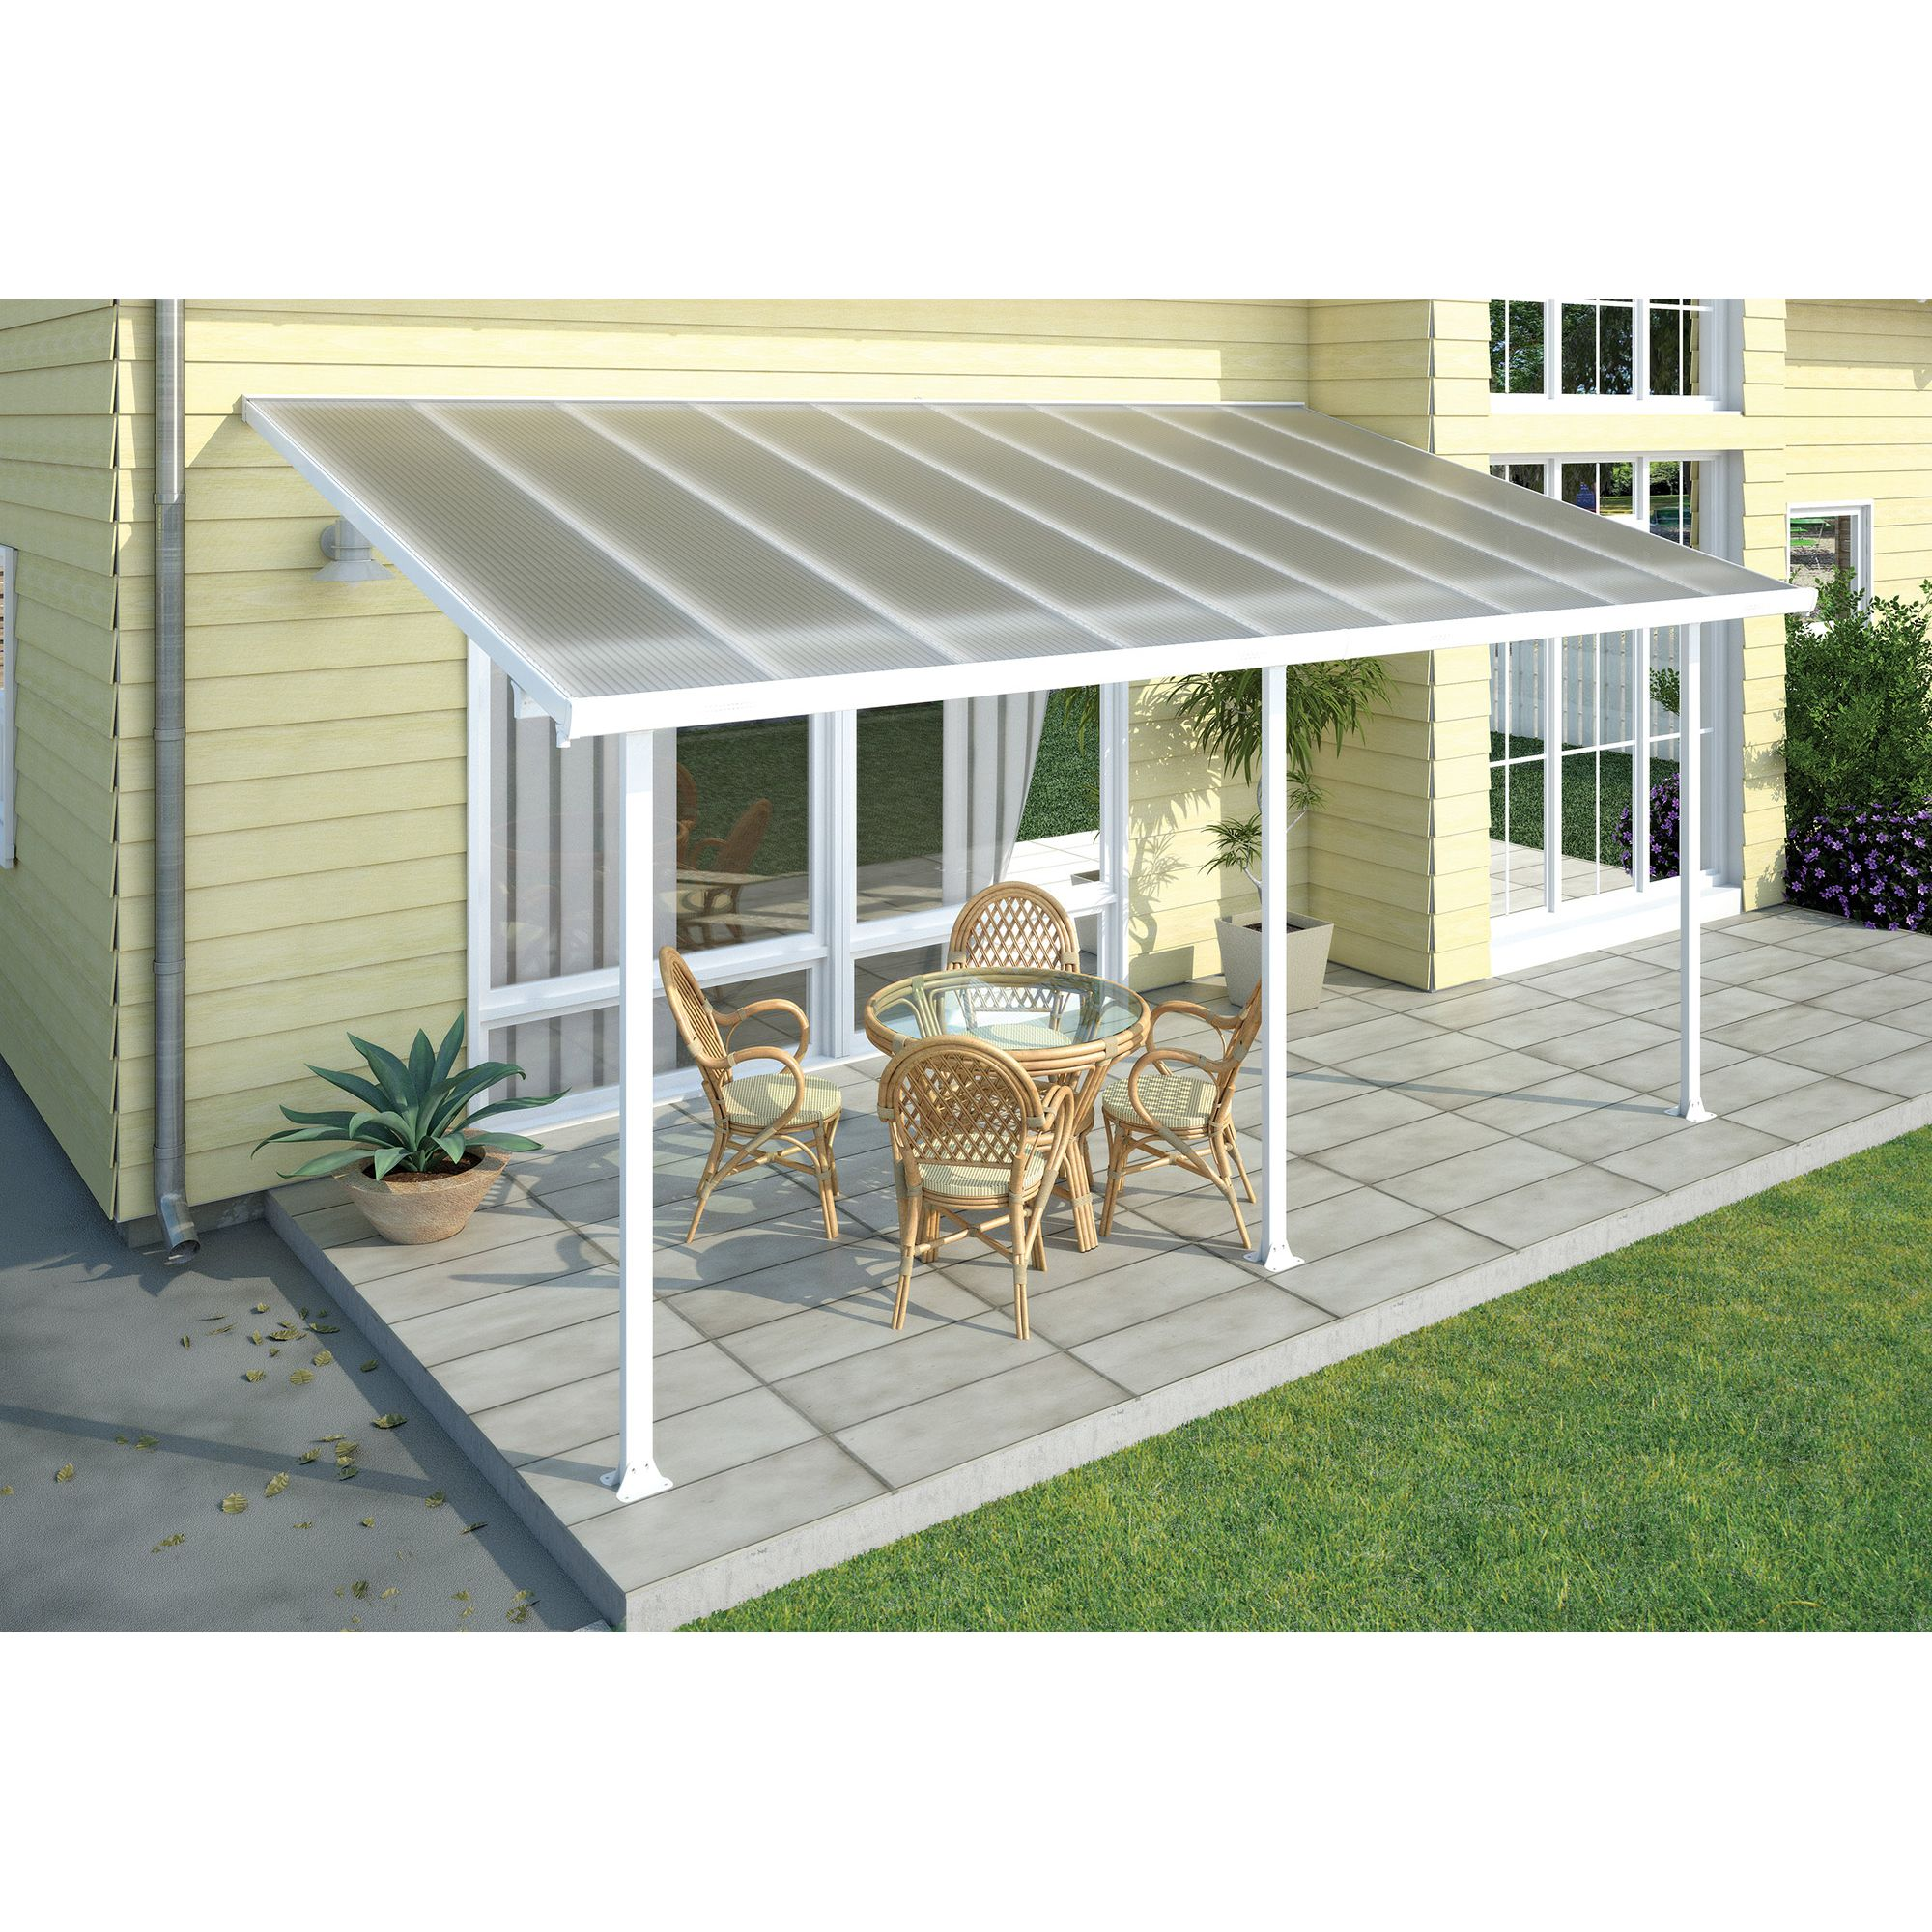 FERIA LEAN TO CARPORT AND PATIO COVER 3X11.56 WHITE at Tesco Direct